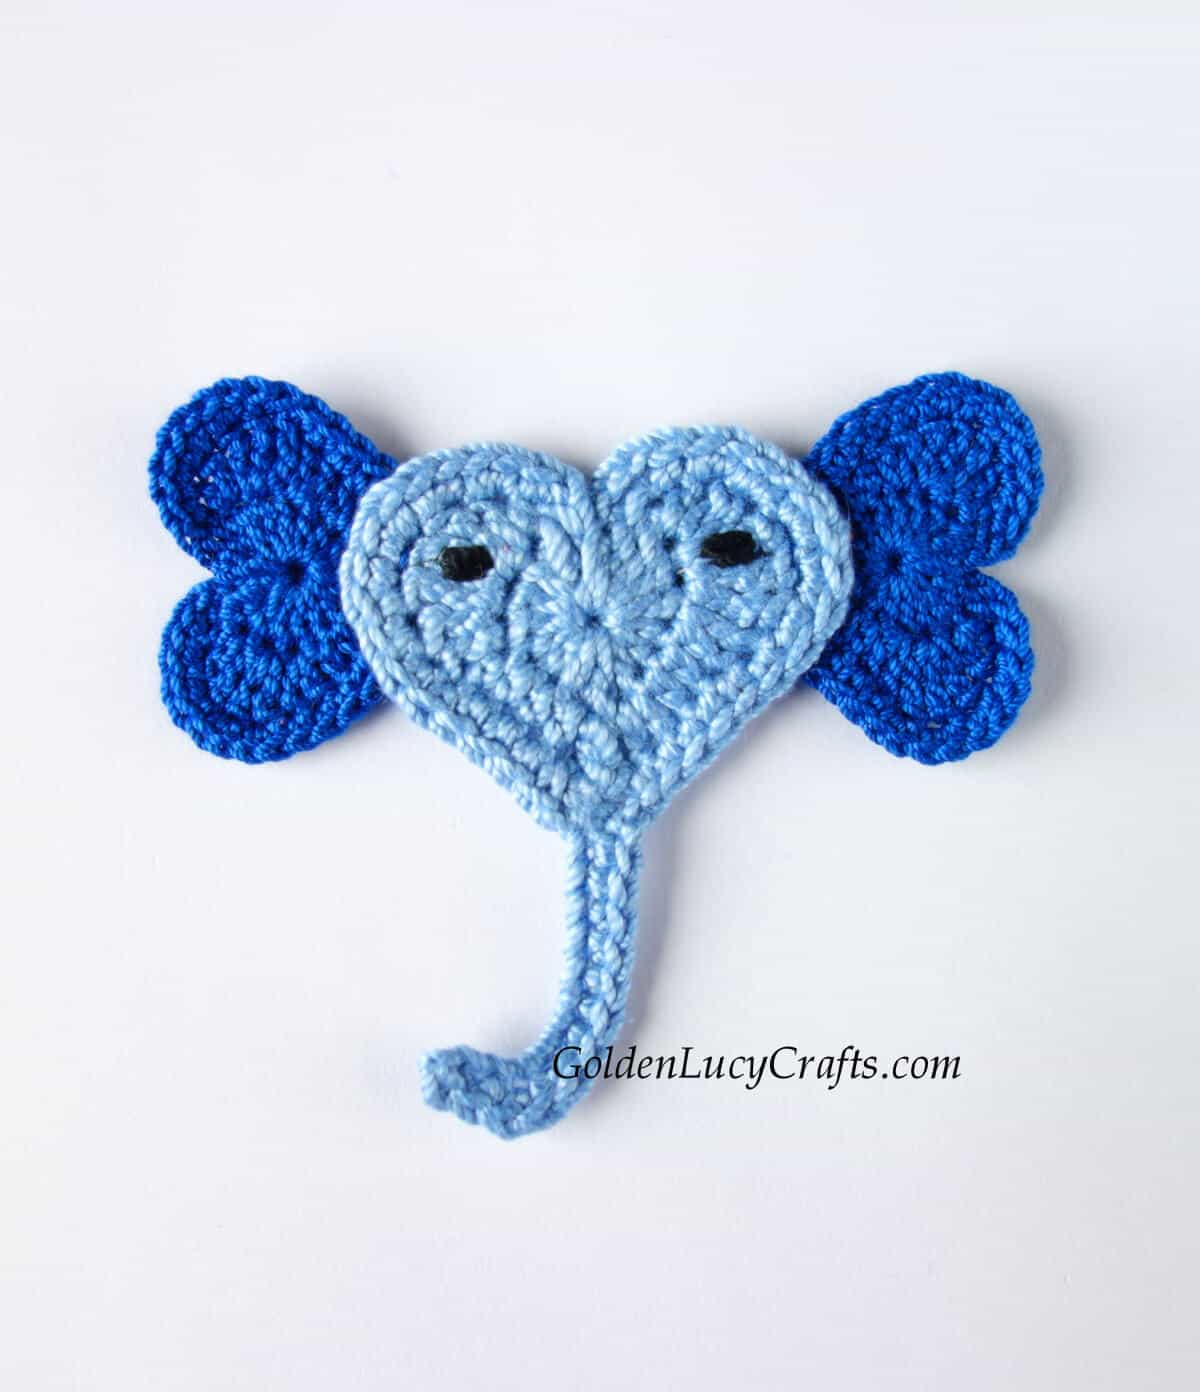 Heart-shaped crocheted elephant applique in blue color.